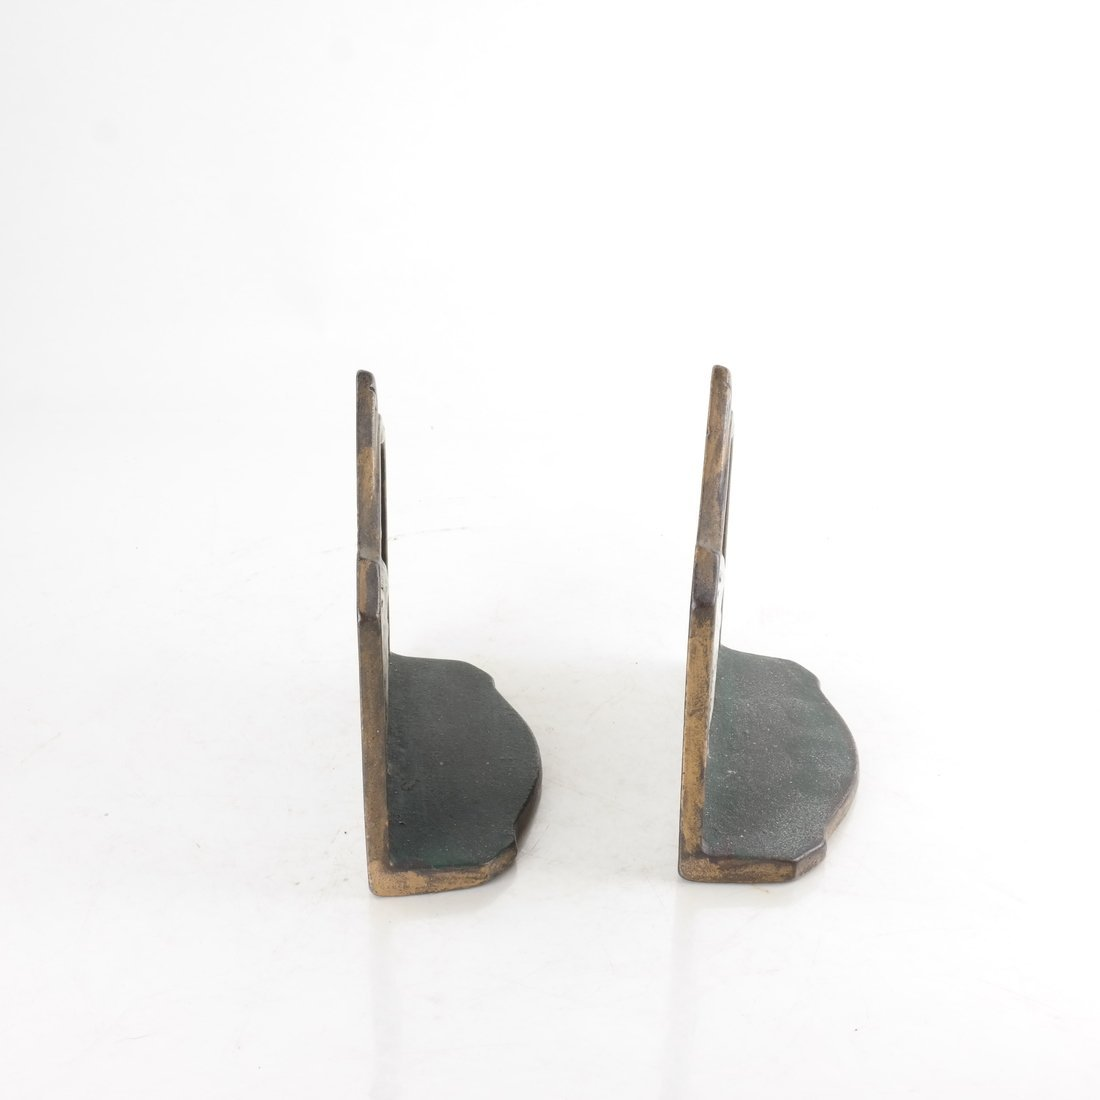 Two Painted Cast Iron Bookends - 5